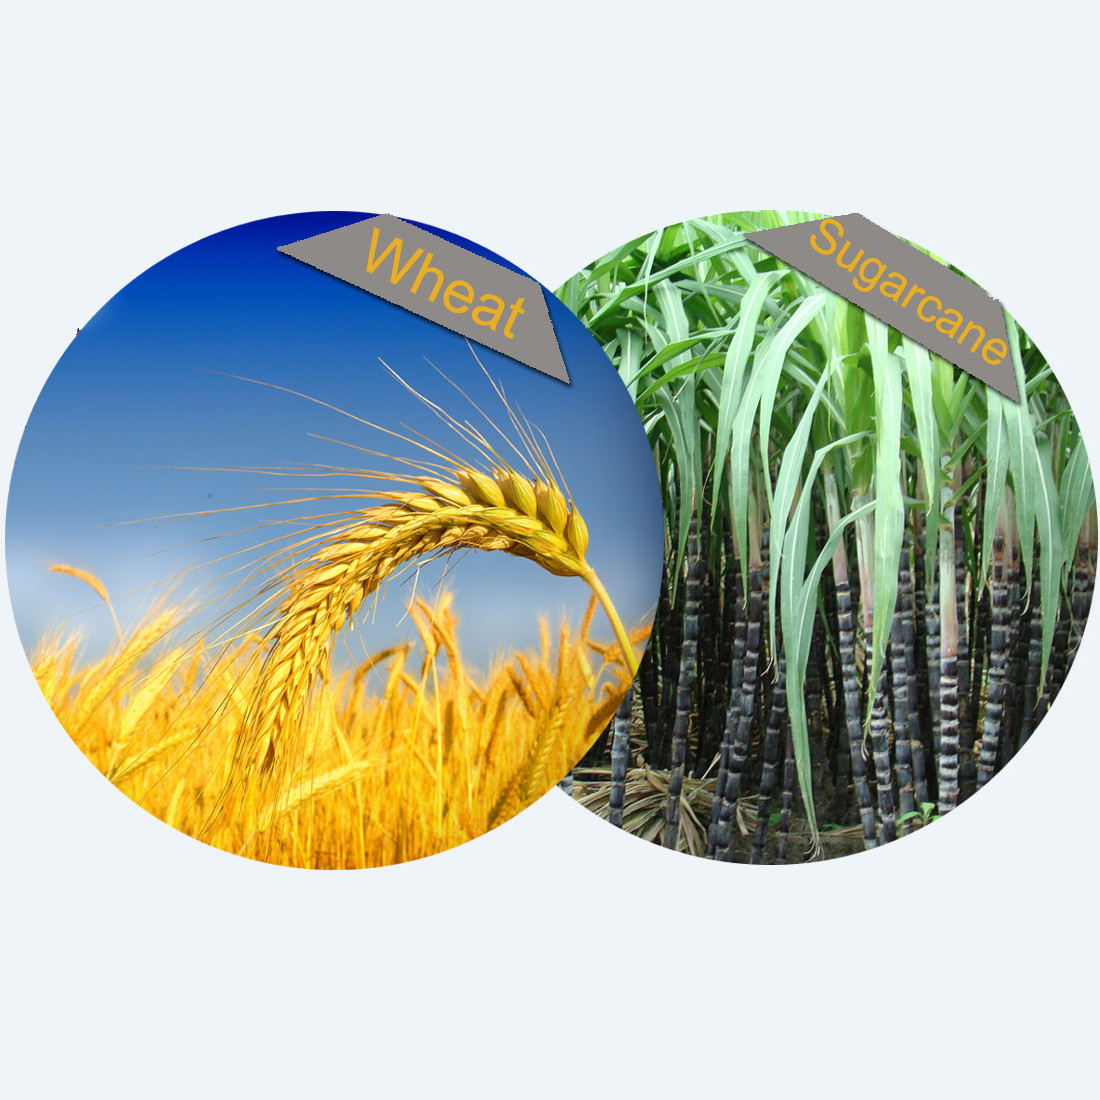 GREENWEIMO Product Biodegradable Bagasse or Wheat Straw Material